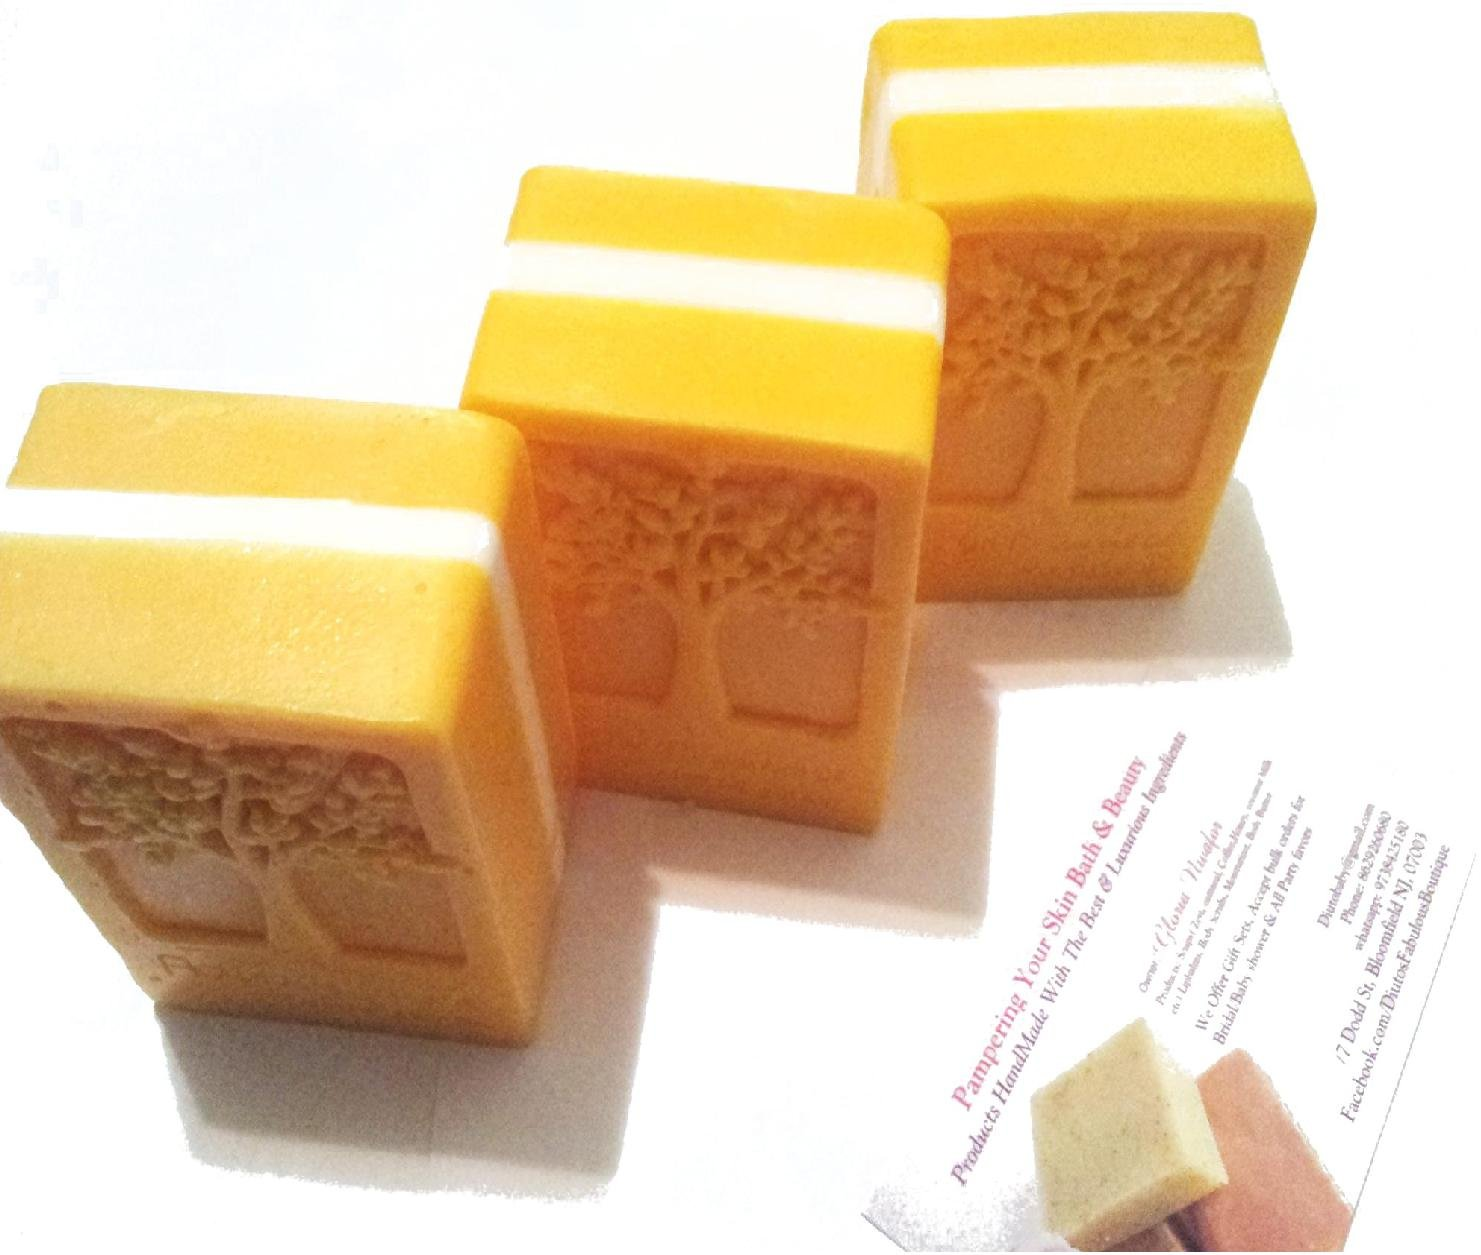 Enchanment Apple' Homemade All Natural Papaya Bar Soap